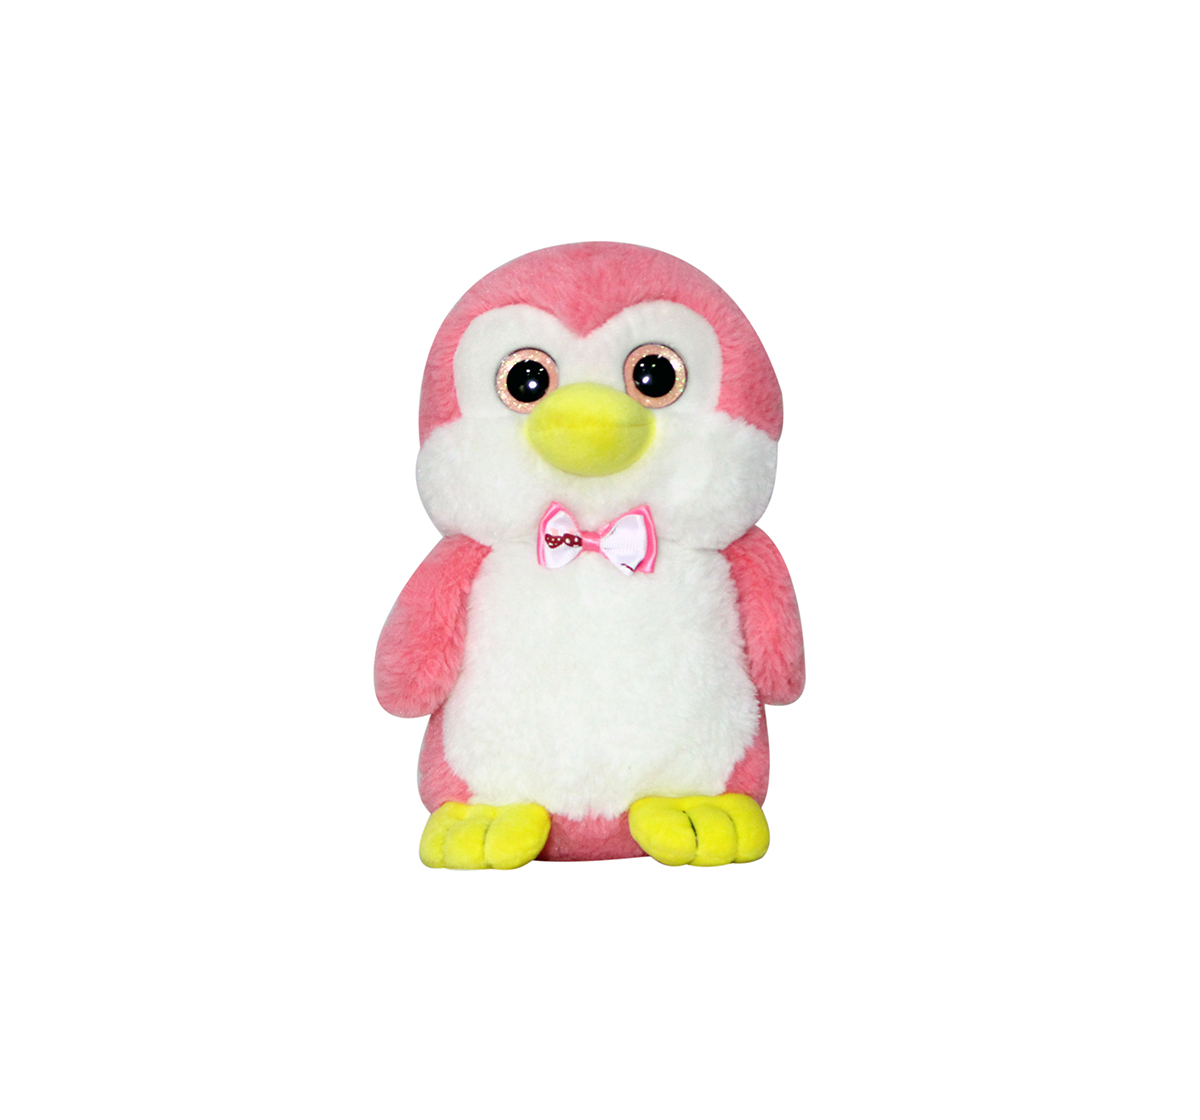 Soft Buddies | Softbuddies Pink Penguin Quirky Soft Toys for Kids age 3Y+ - 24 Cm (Pink)